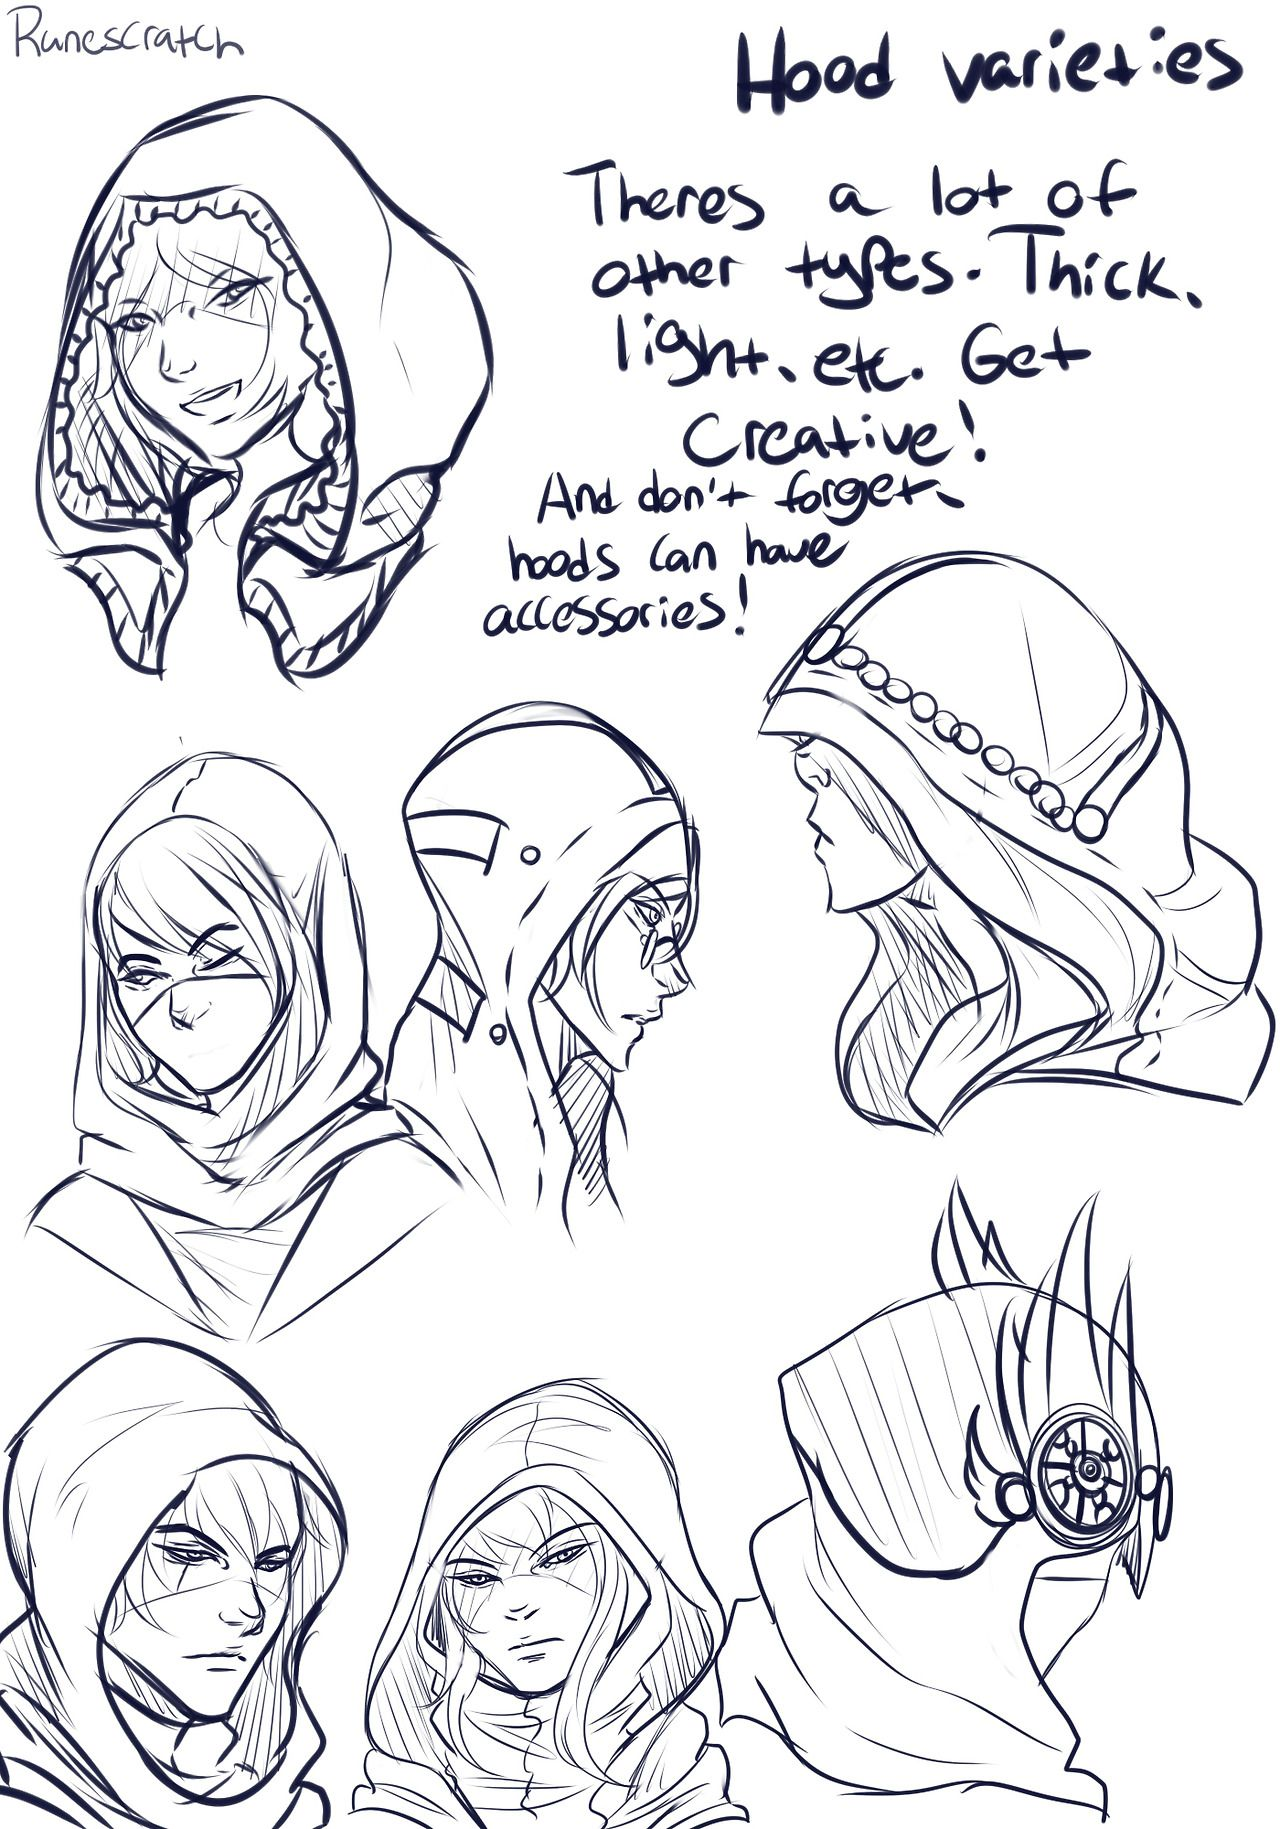 Silly Chicken Scratch, I've Been Asked A Lot About How I Draw Hoods